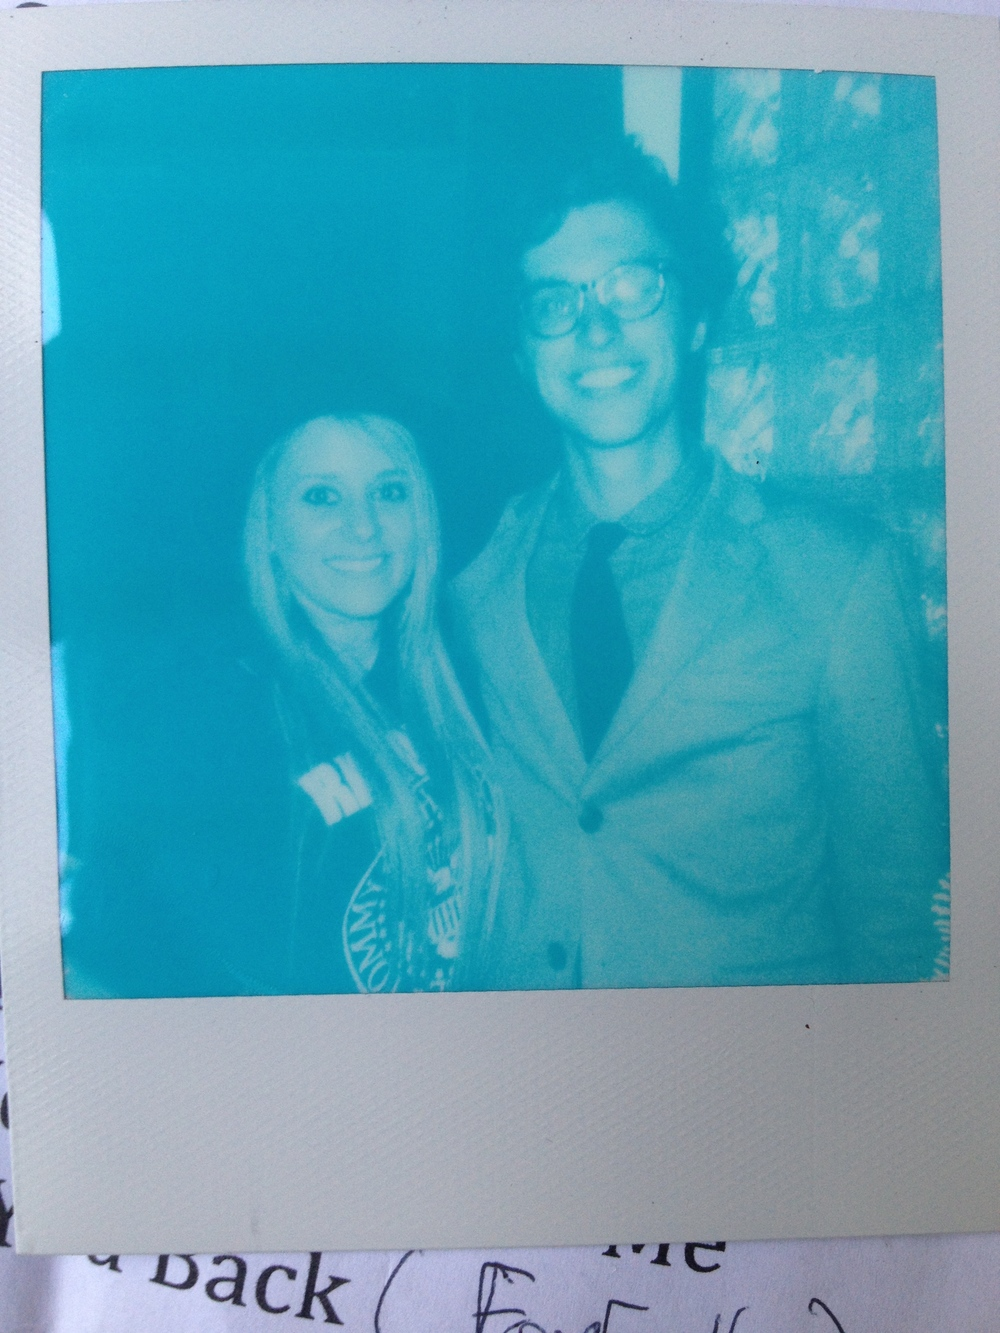 The author with Whiskey Autumn frontman Greg Laut. Blue polaroid courtesy Becky Guidera.